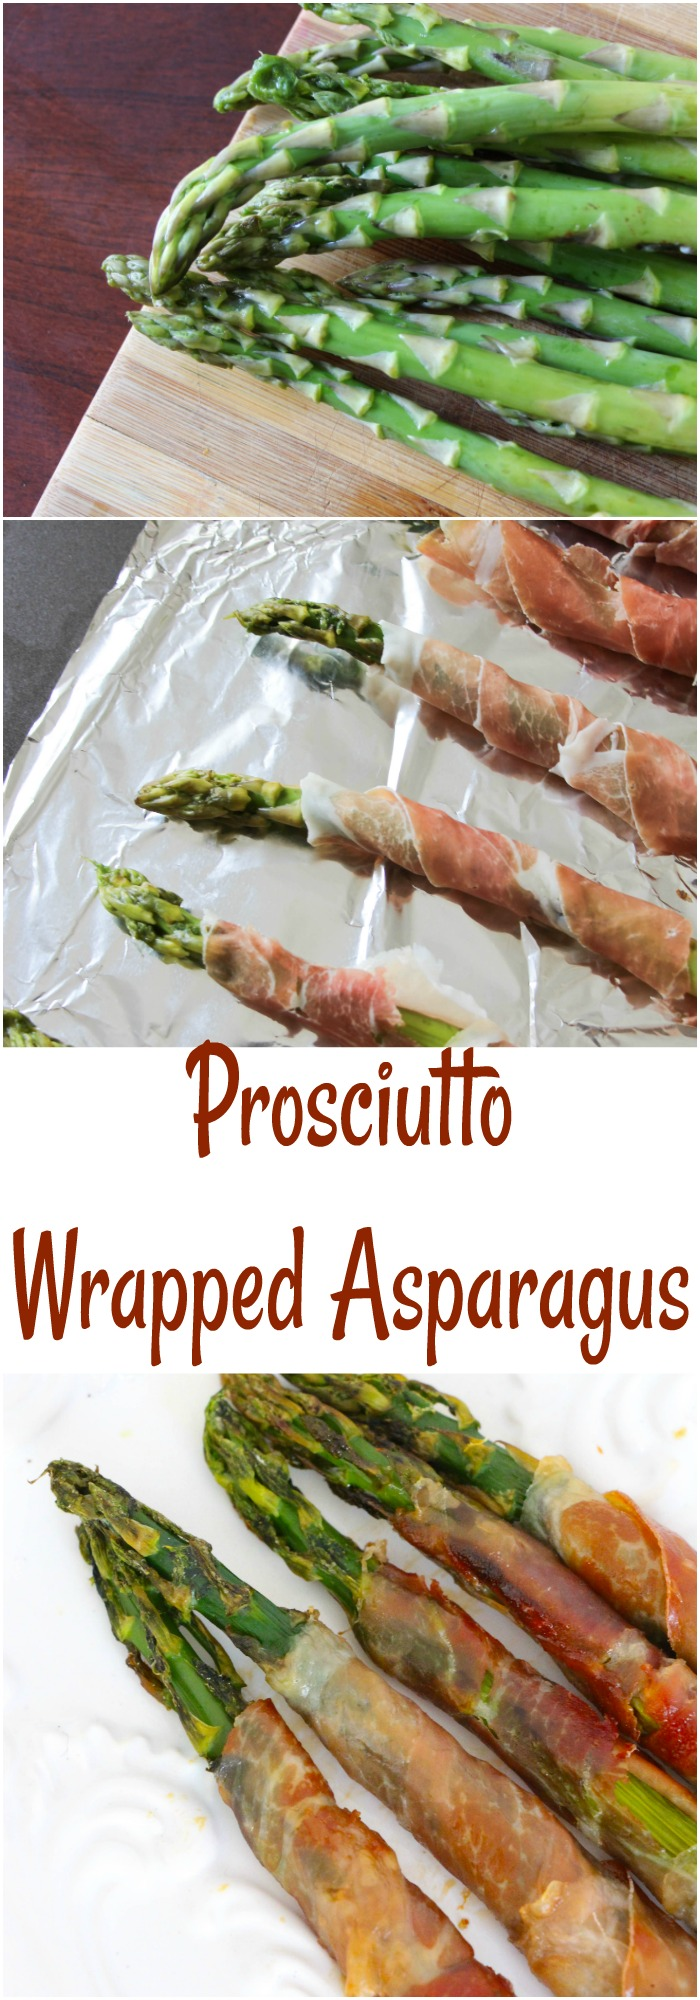 This asparagus wrapped in prosciutto is an easy appetizer and so tasty!